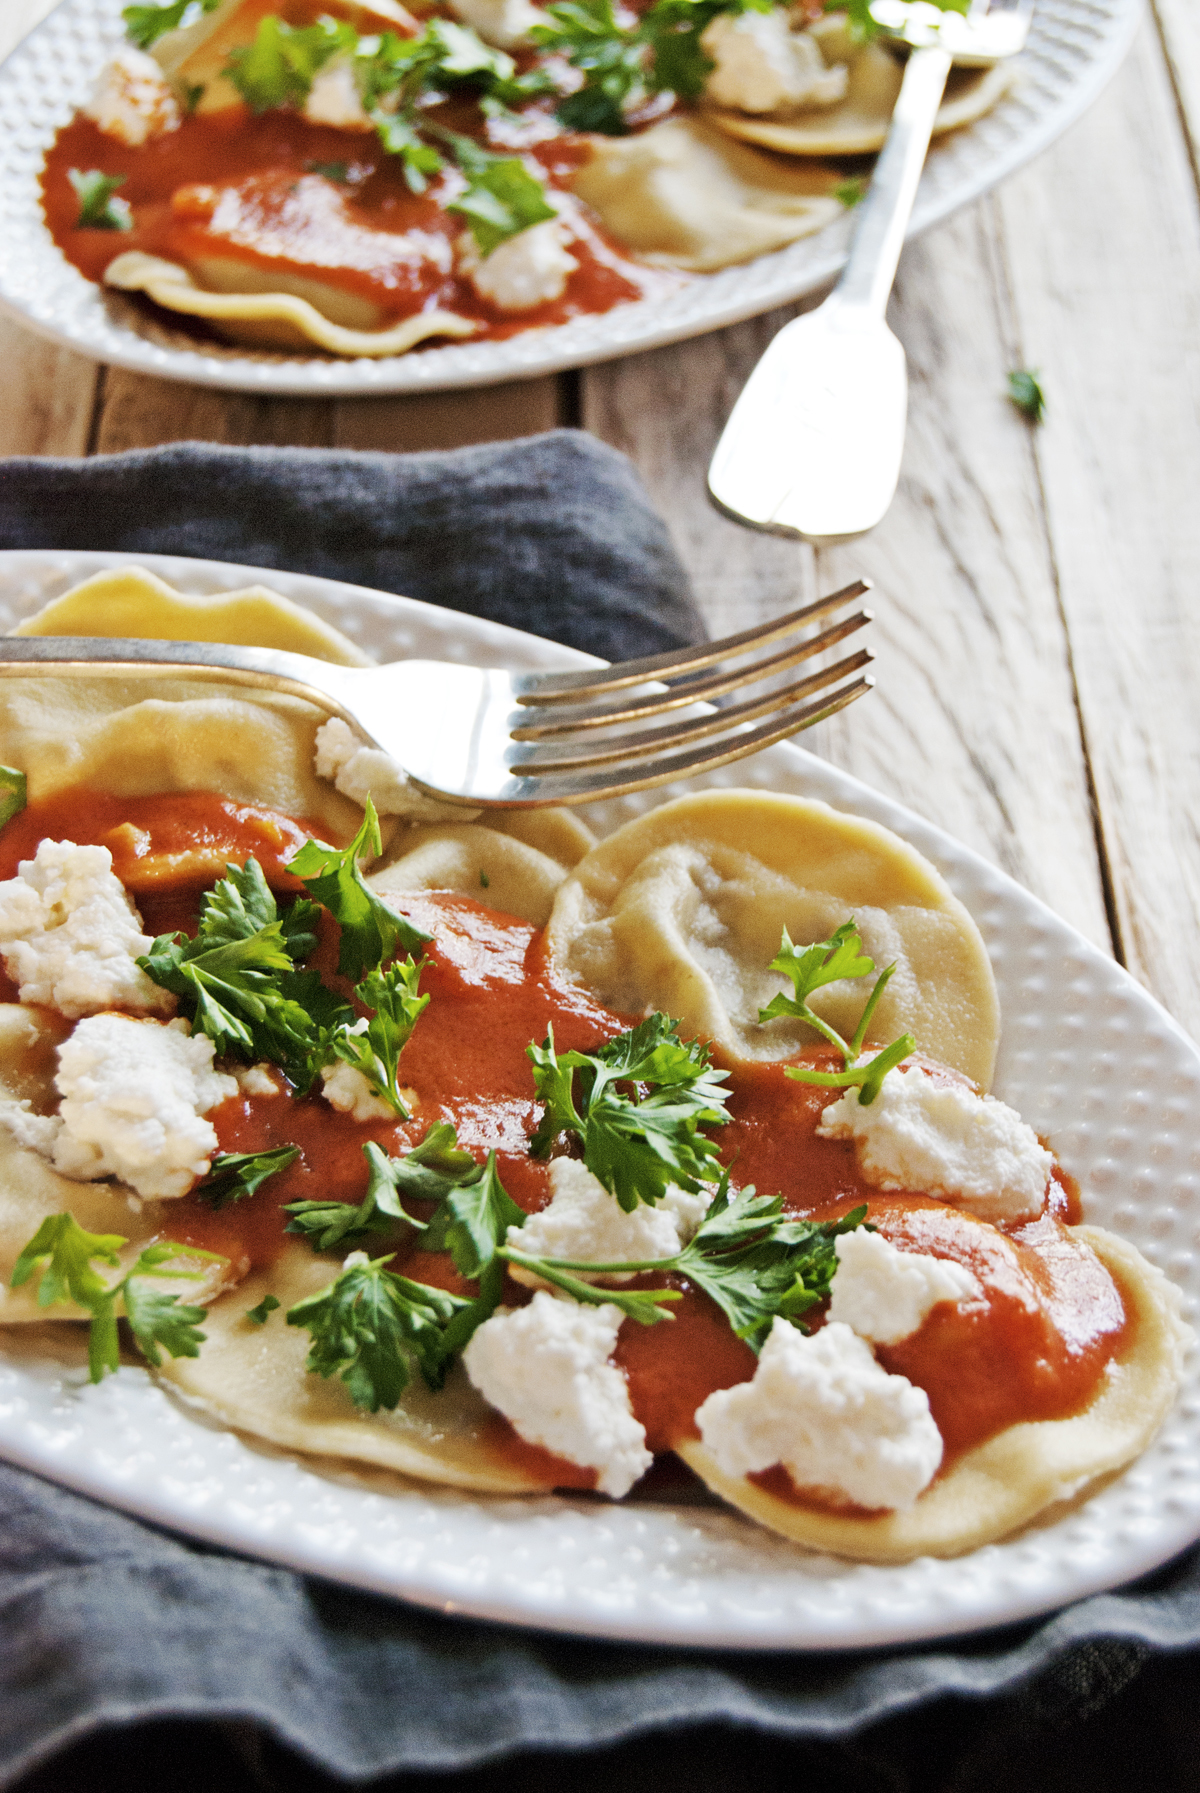 These tasty beef ravioli are filled with a delicious ground beef filling topped with the creamiest tomato sauce you've ever had and lots of fresh ricotta!